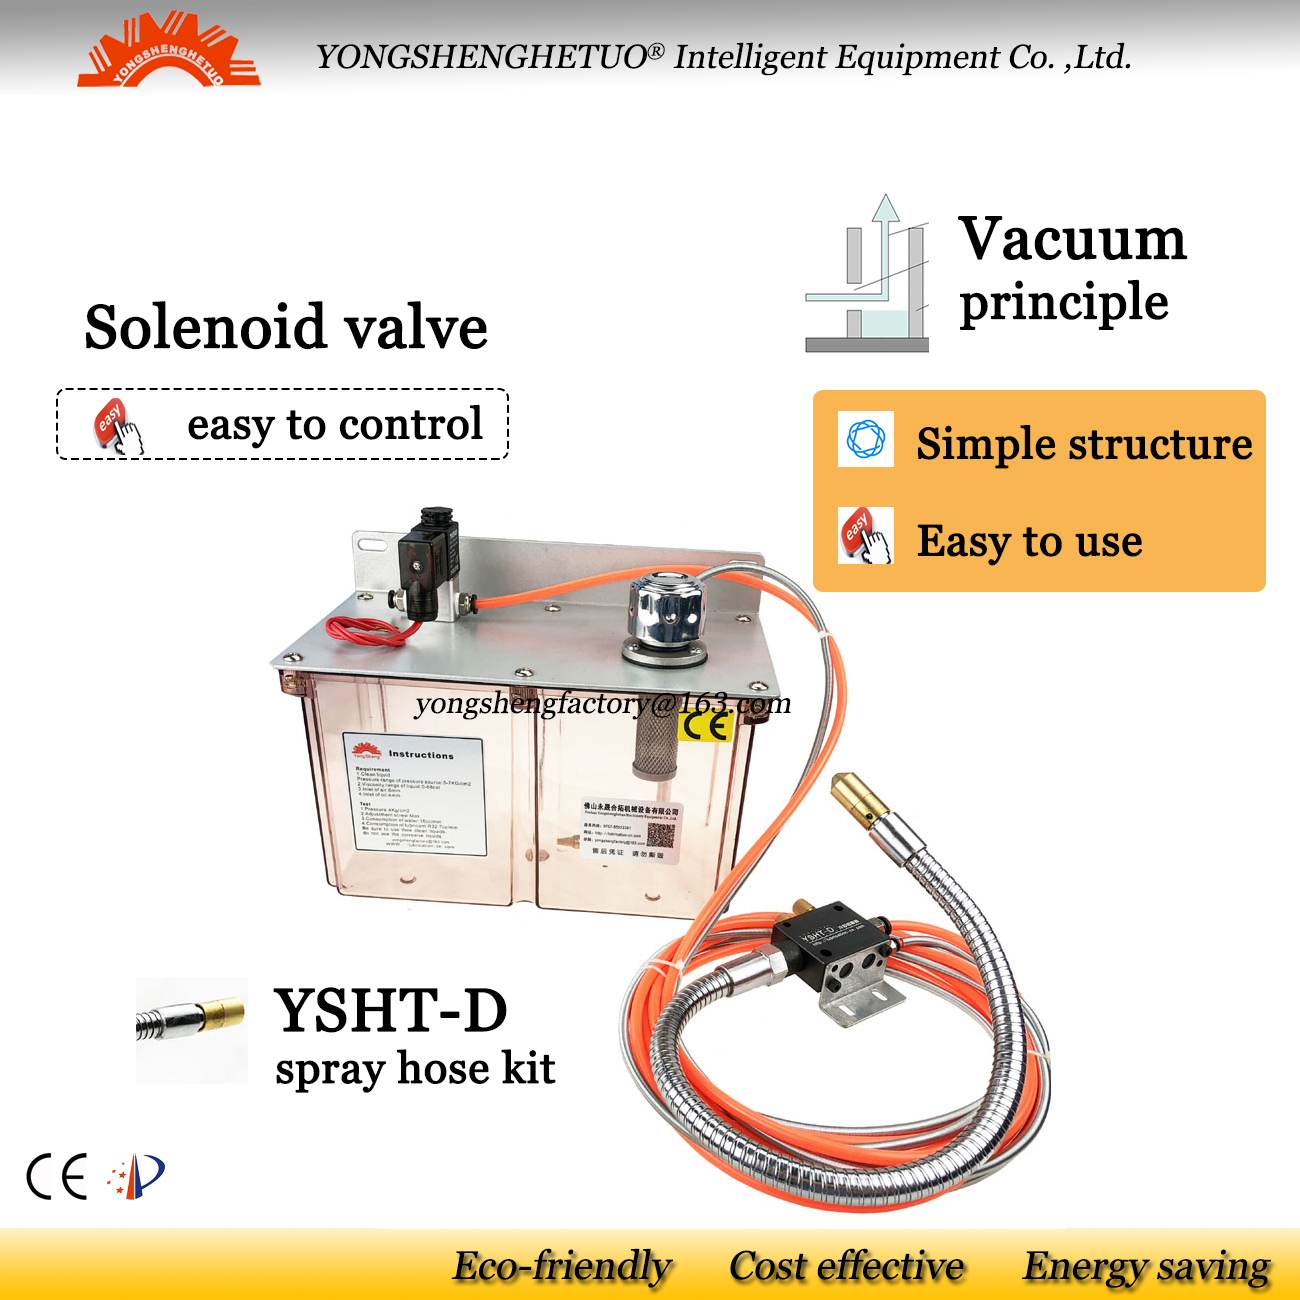 Solenoid valve ready metalworking coolant pump oil mist BPV sprayer metal cutting cooling CNC engraving router